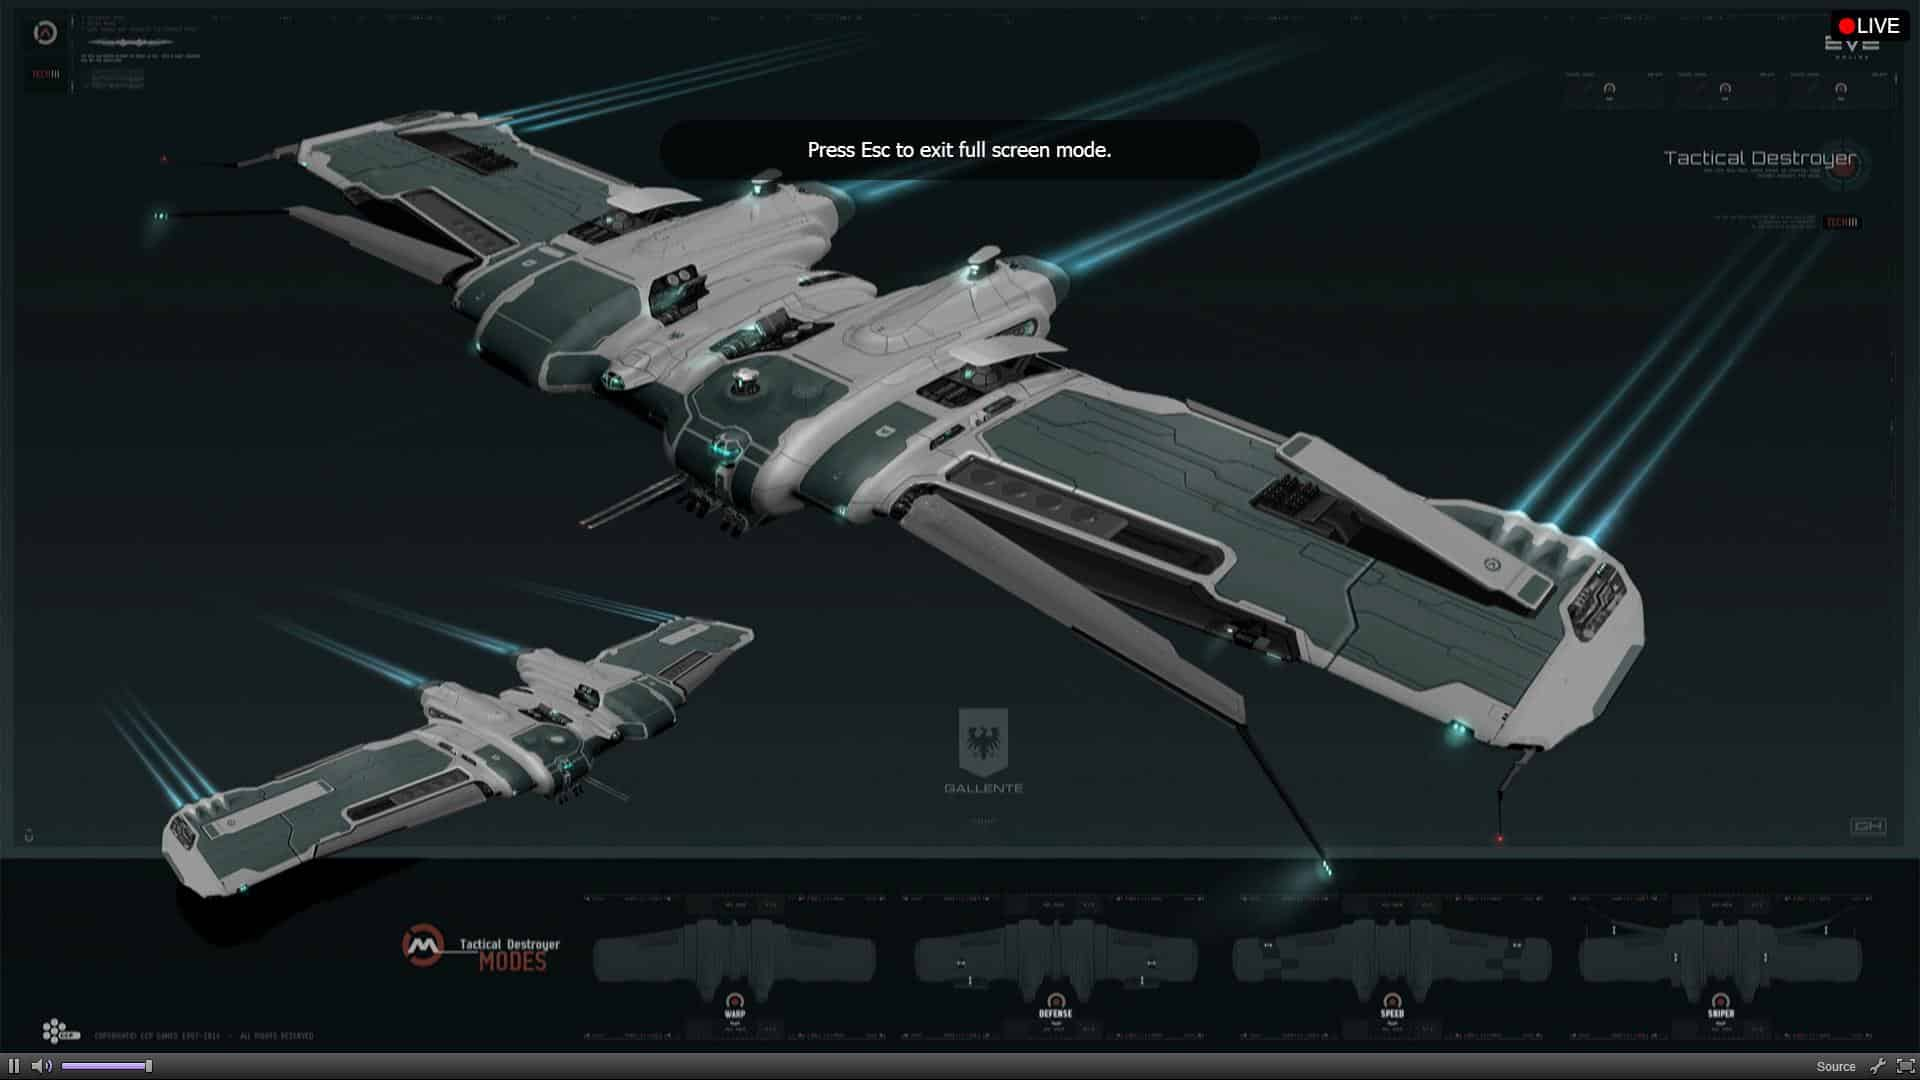 Missile guidance modules, the Hecate and balance updates in Aegis